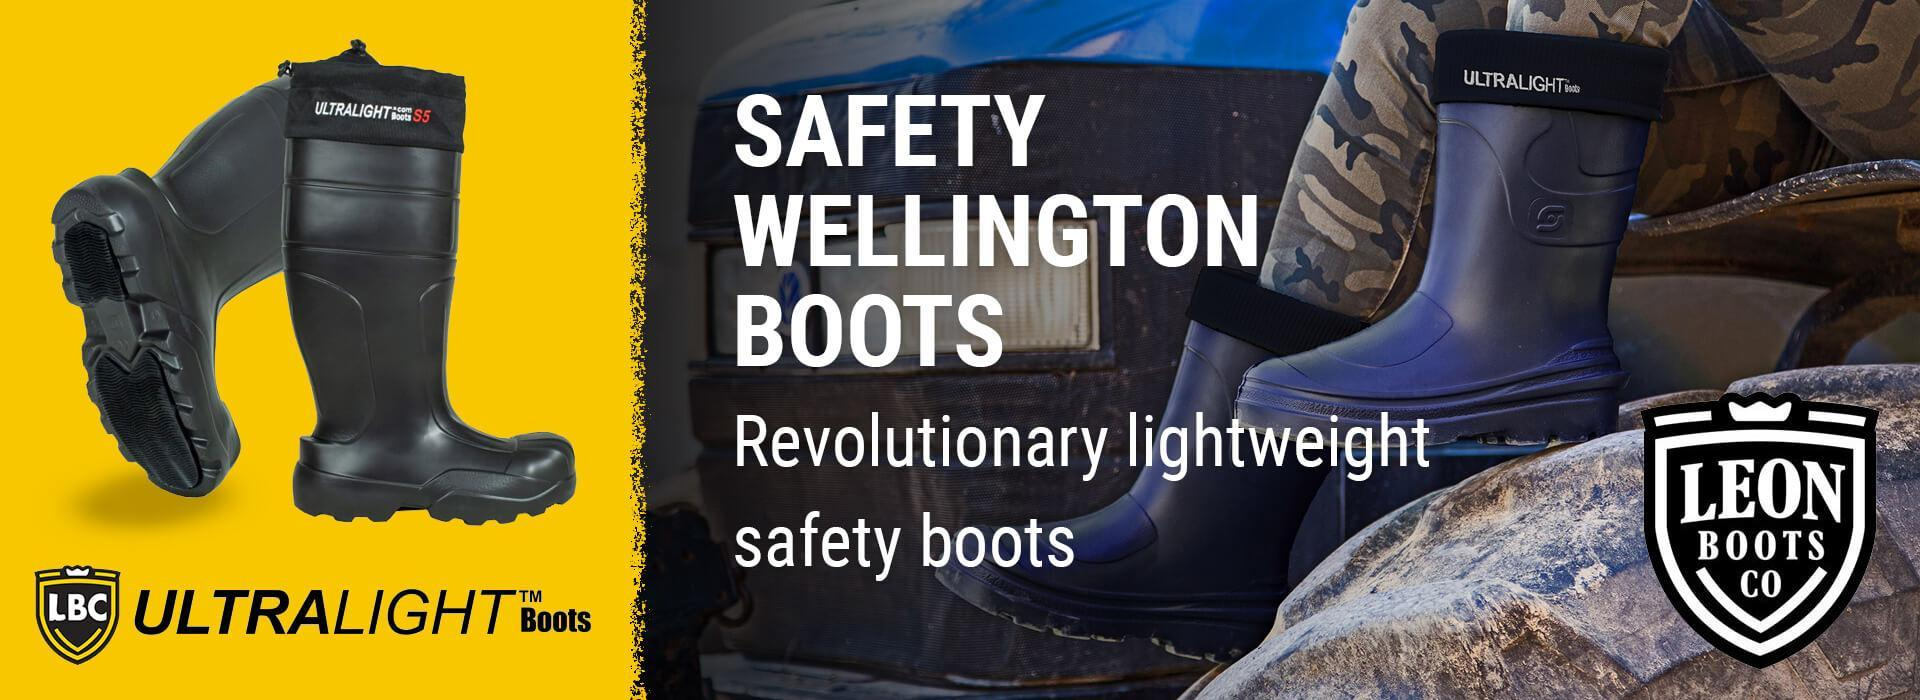 Somerset Workwear for Safety and Standard Wellington Boots